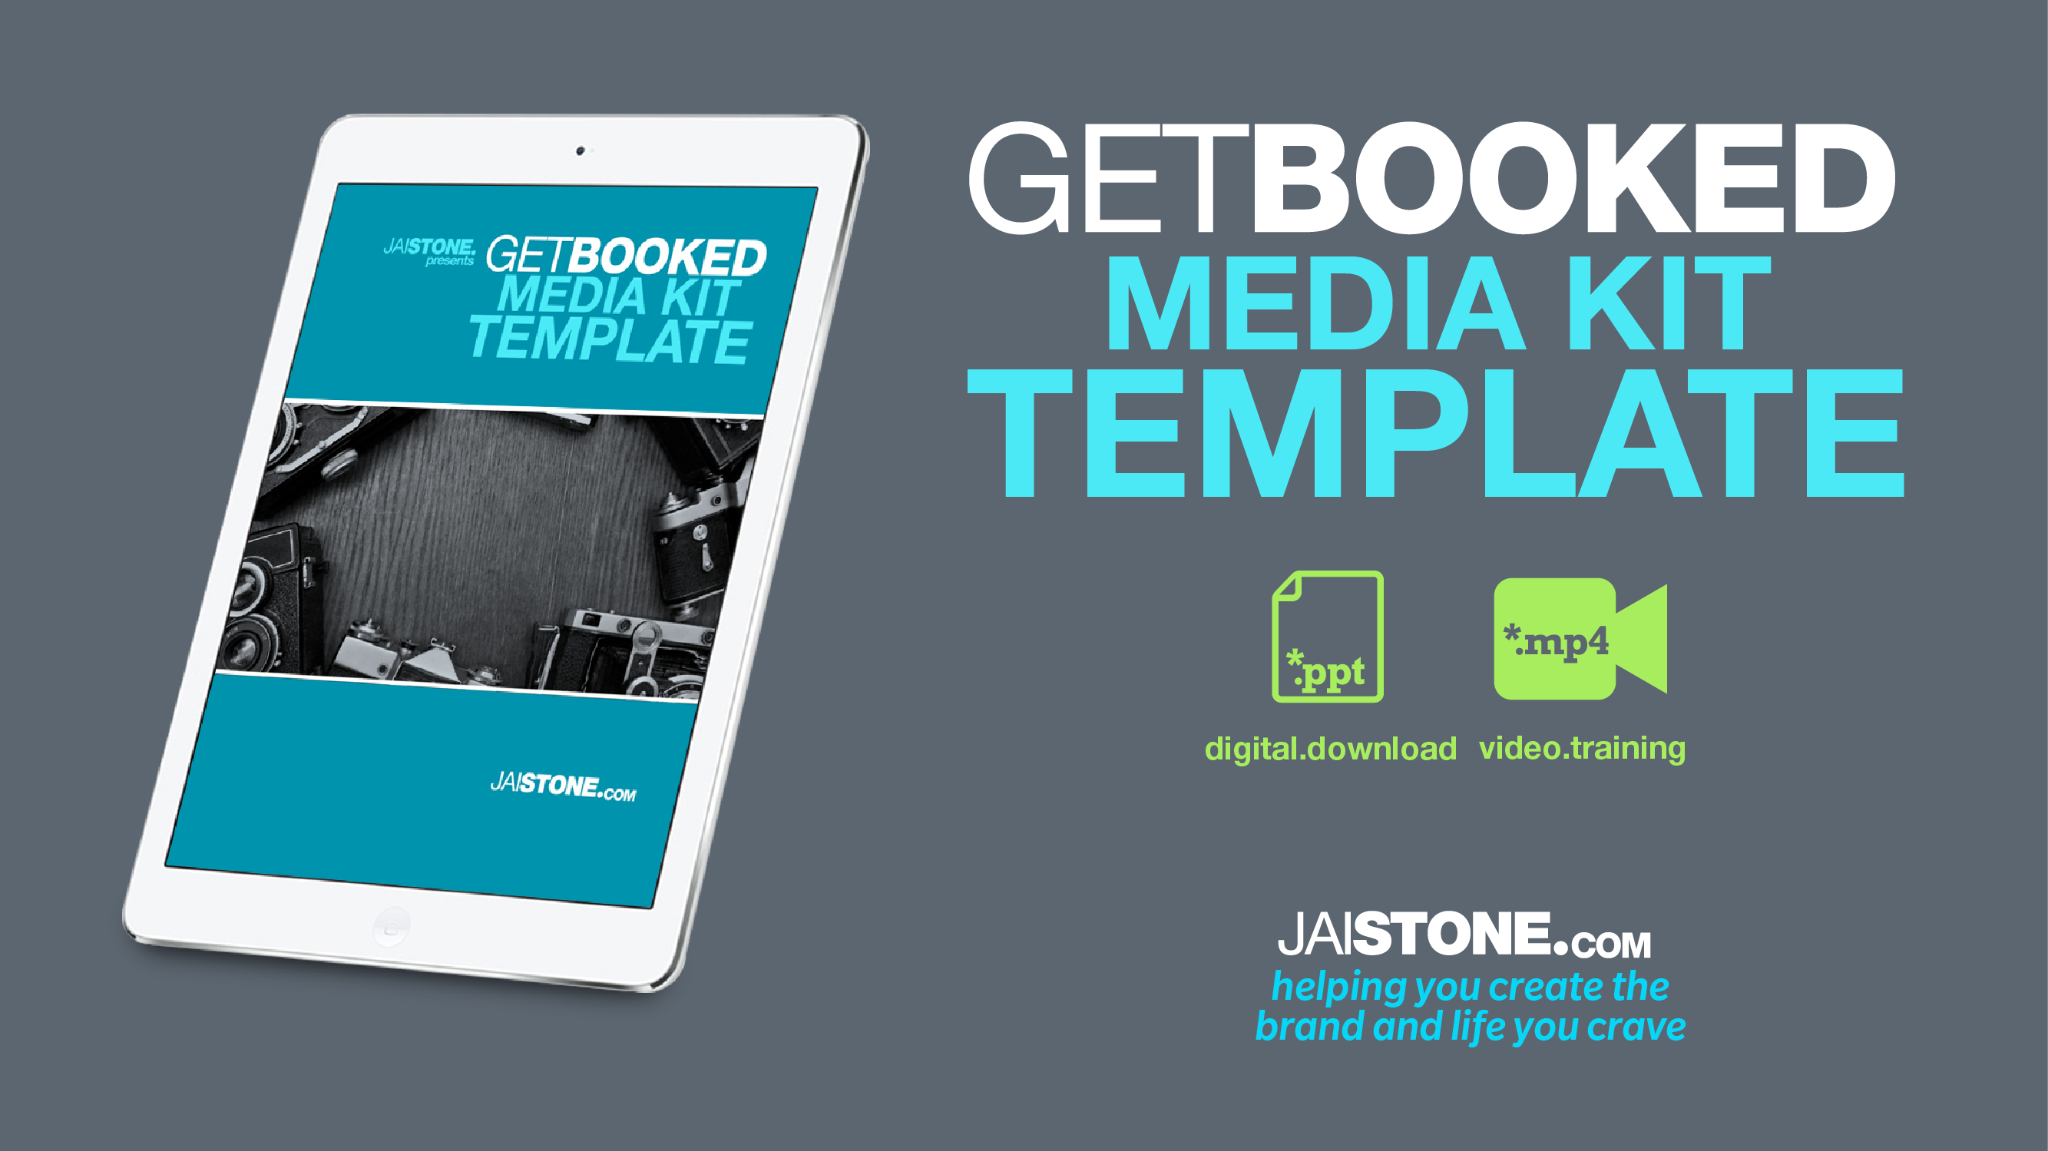 Get Booked Media Kit Template (designed in POWERPOINT)